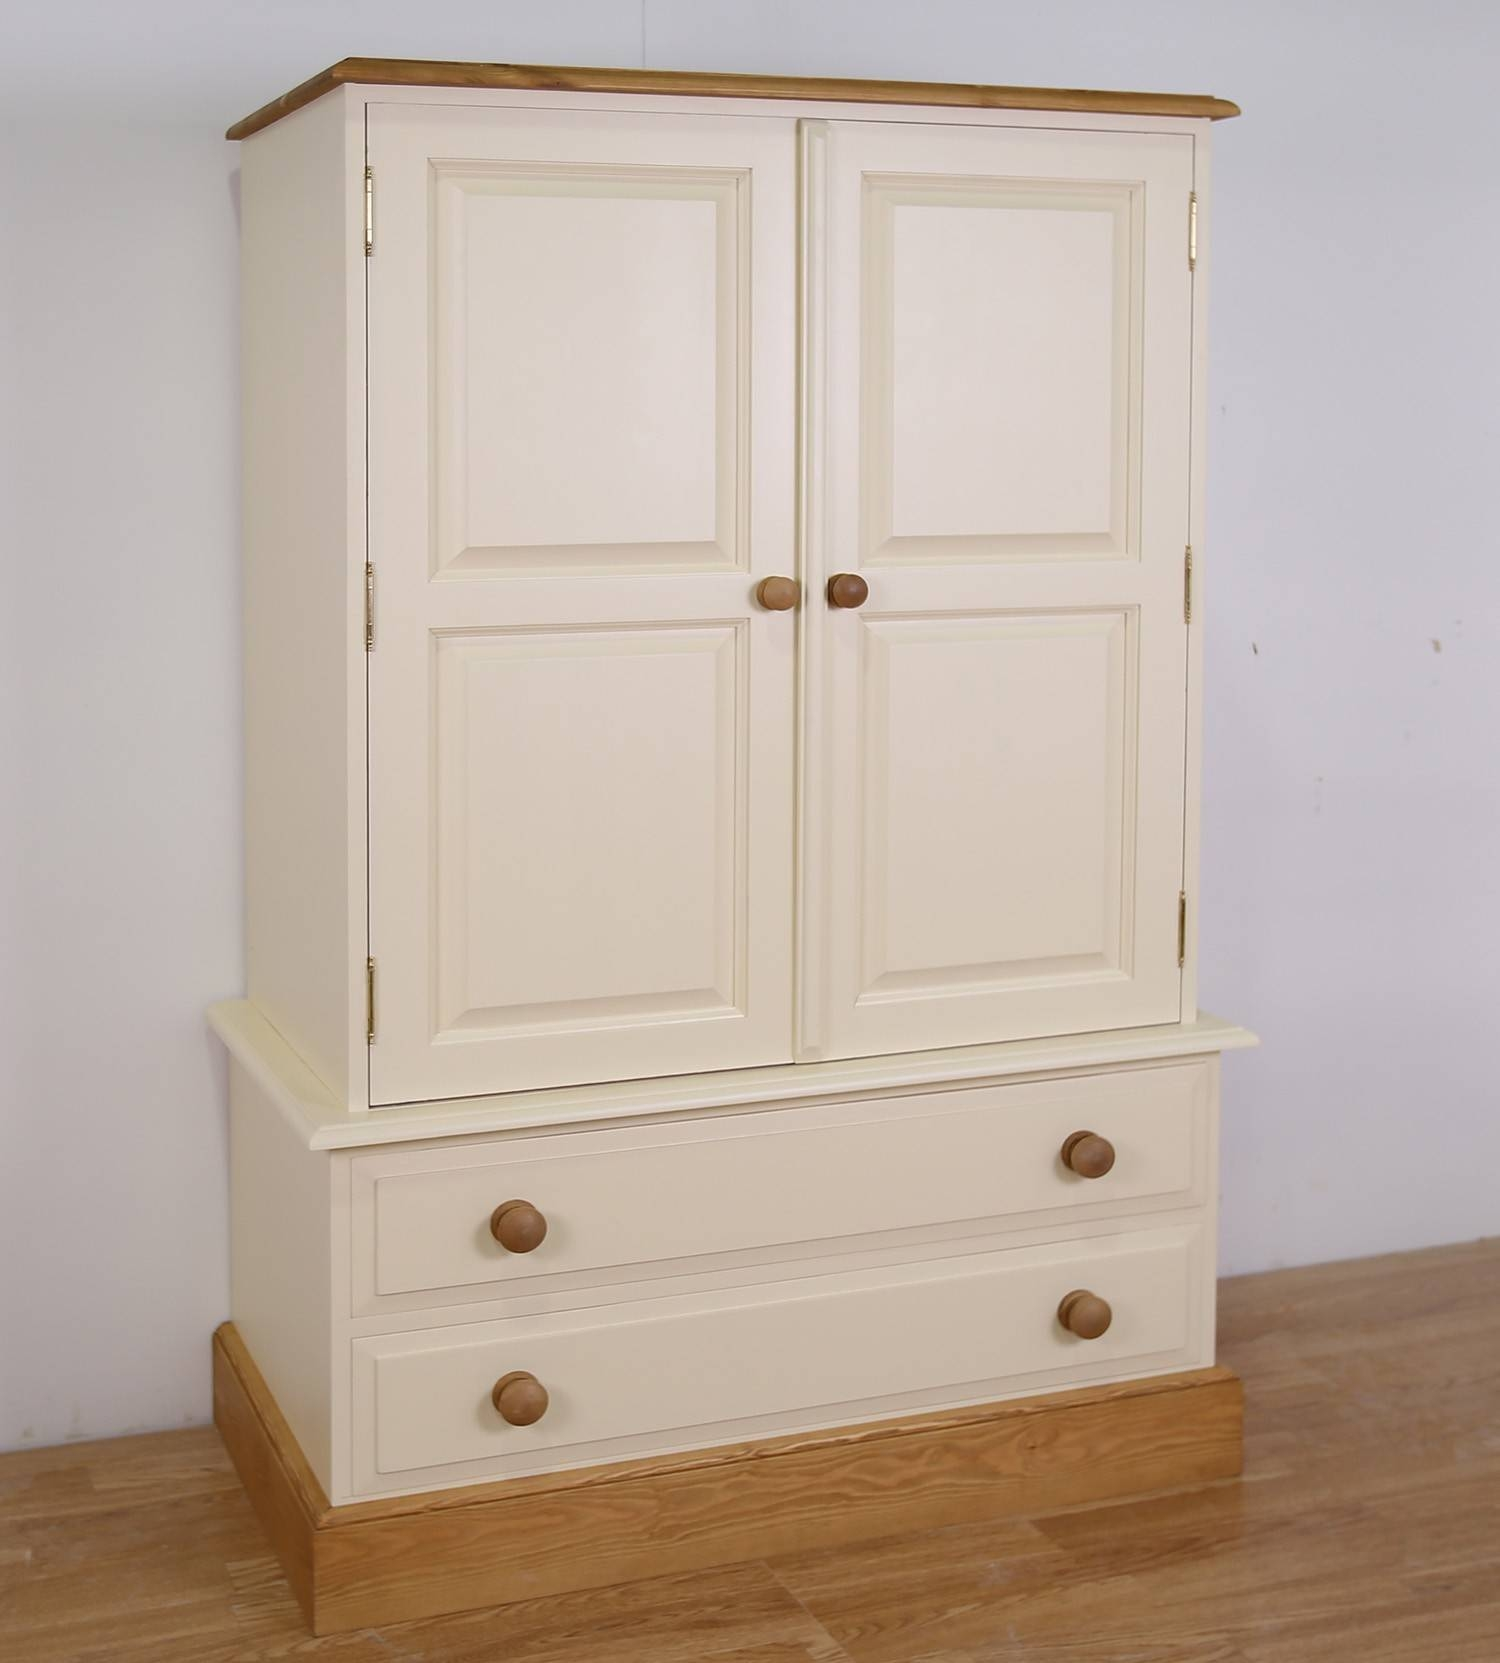 Farrow & Ball Painted Children's Wardrobe With Drawers intended for Kids Wardrobes With Drawers (Image 6 of 15)